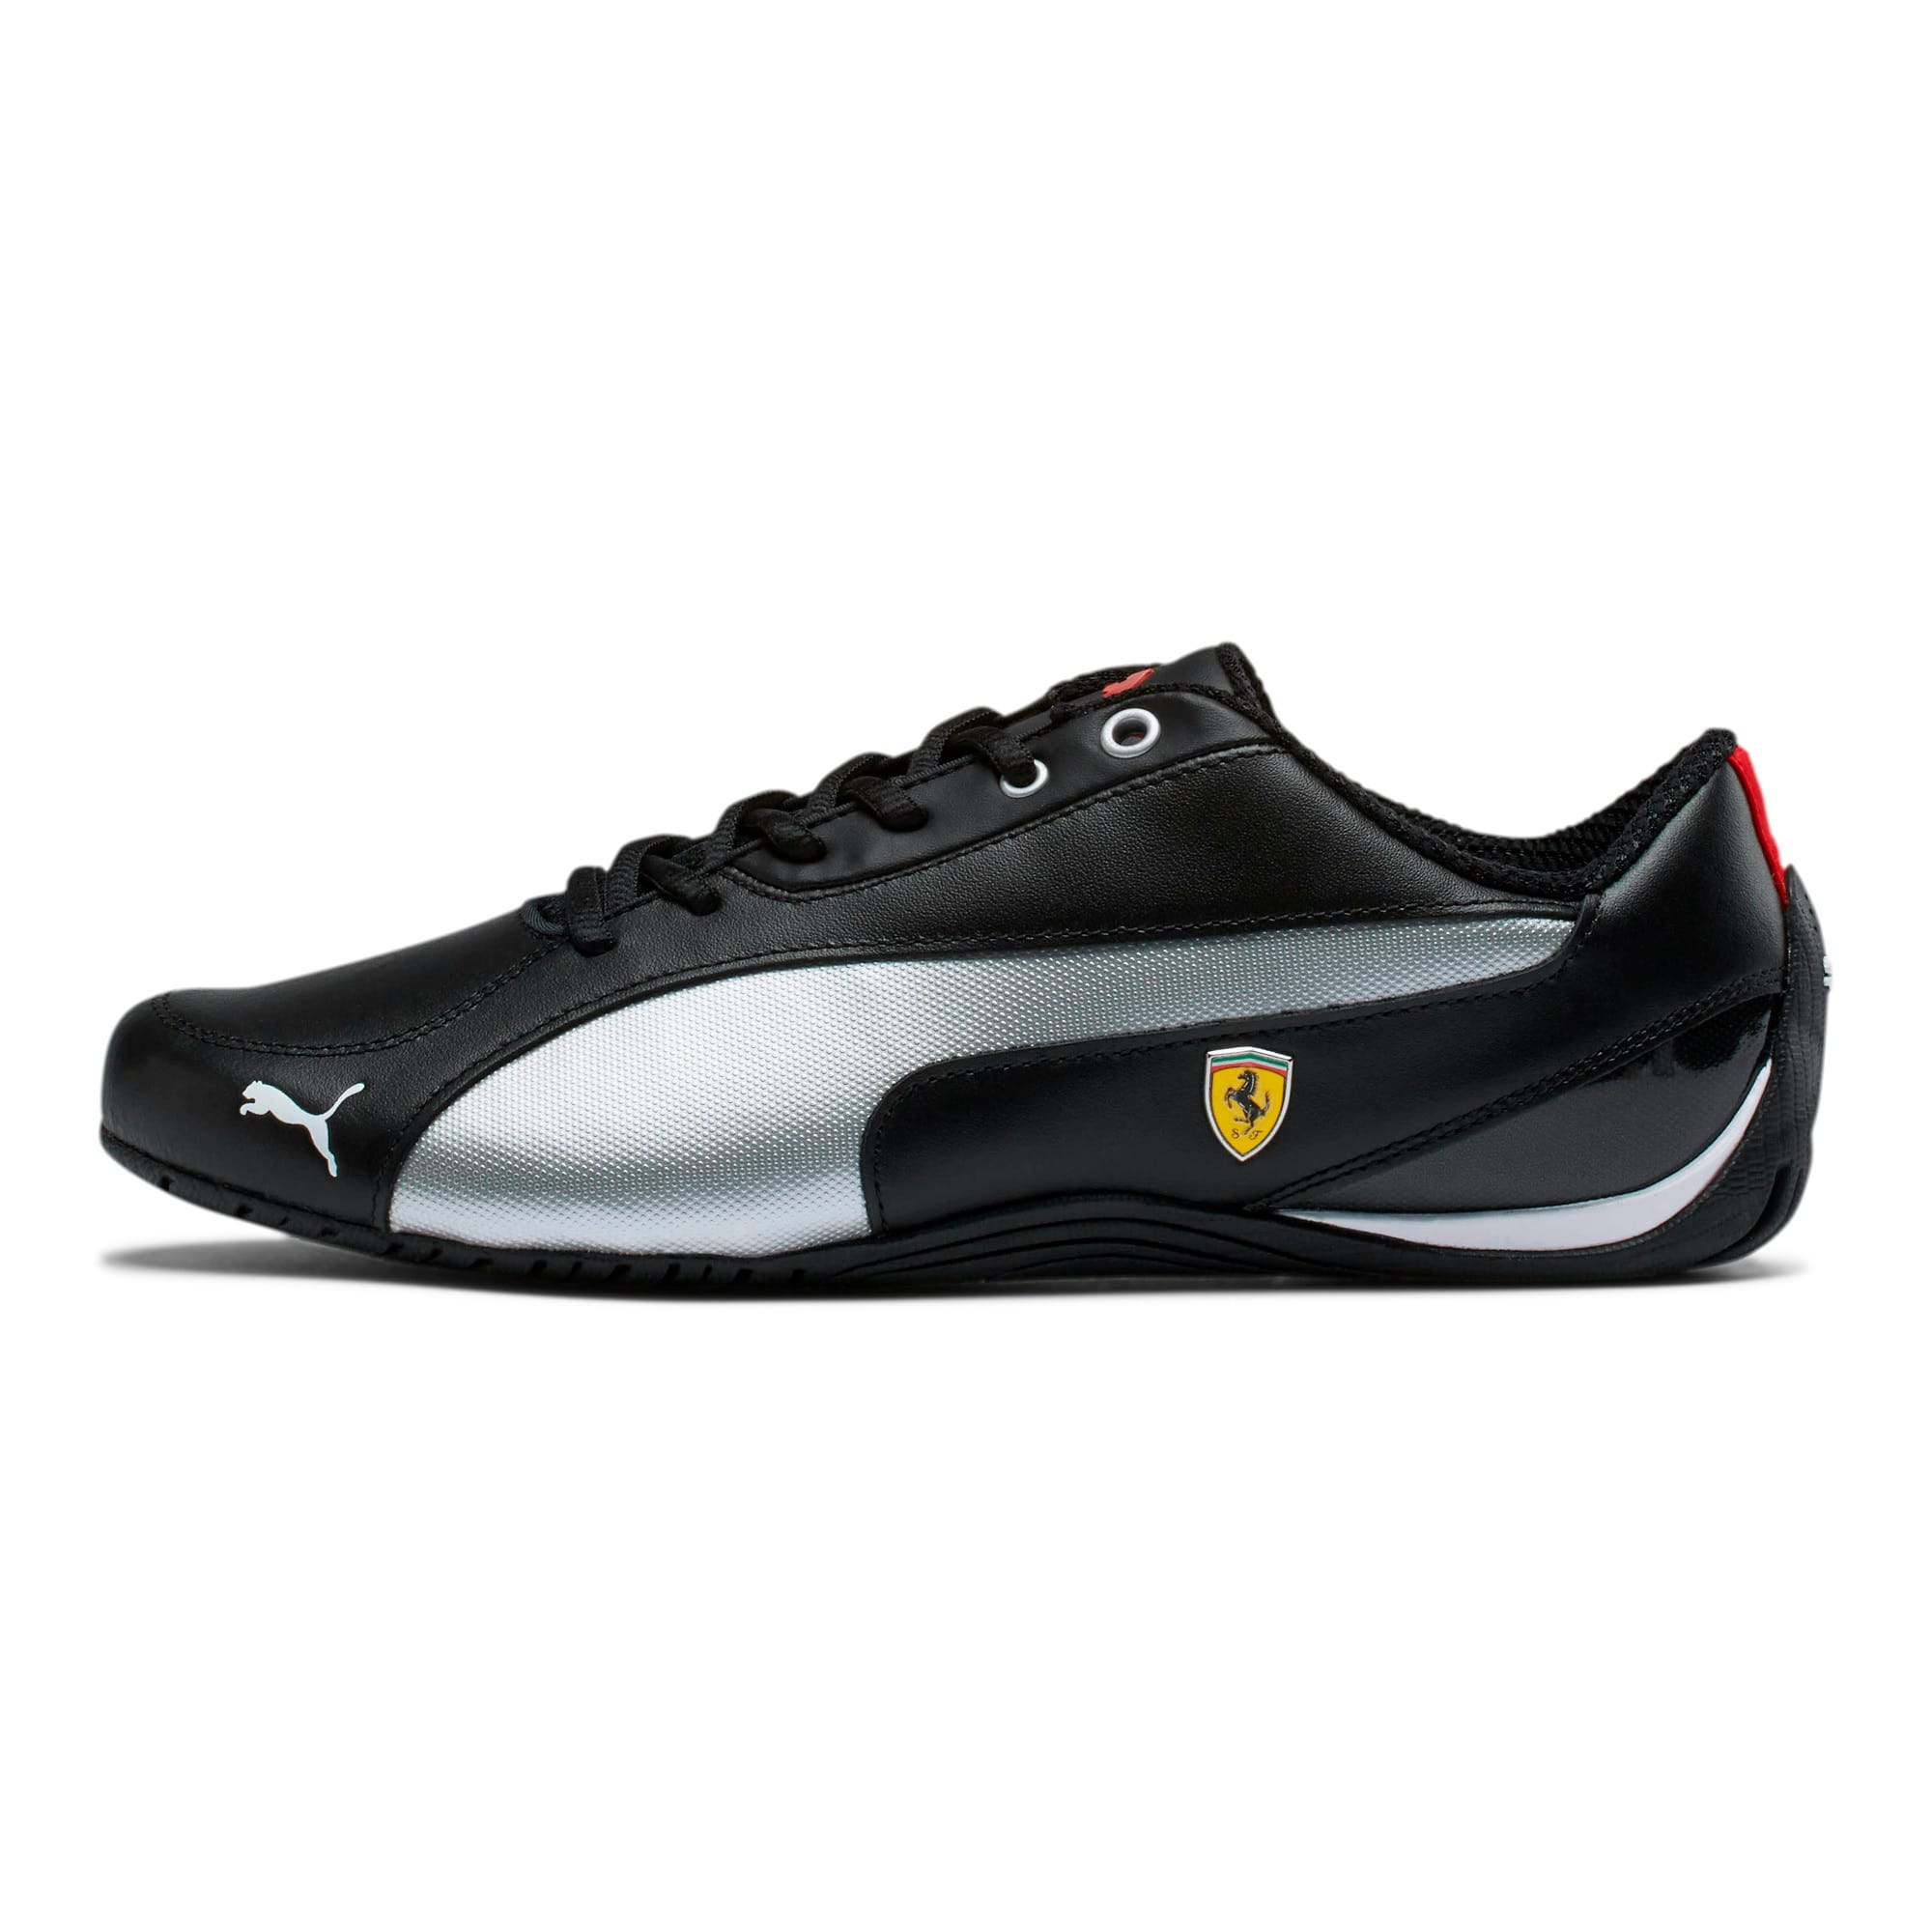 Thumbnail 1 of Scuderia Ferrari Drift Cat 5 NM Men's Shoes, Puma Black-Puma Black, medium